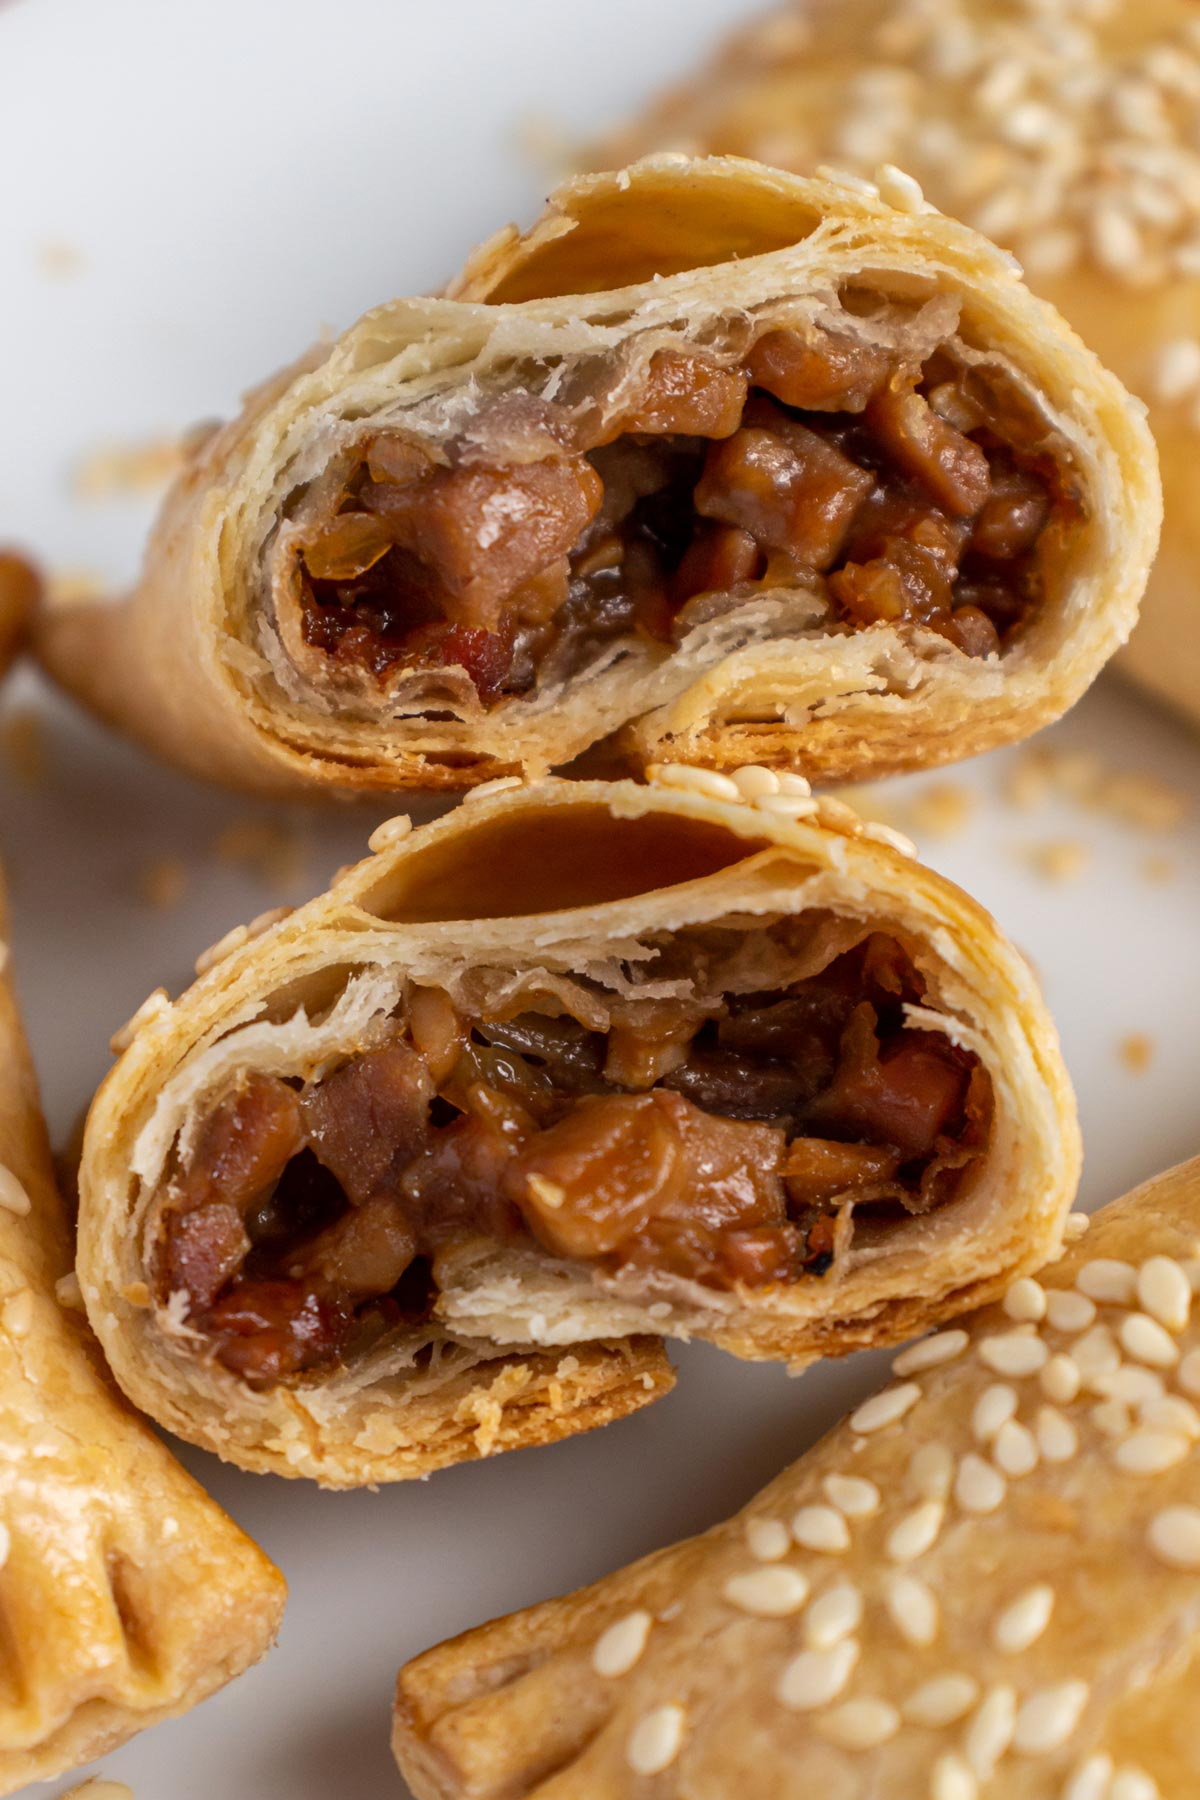 Closeup of a flaky Chinese pastry broken in half to show the char siu pork filling.